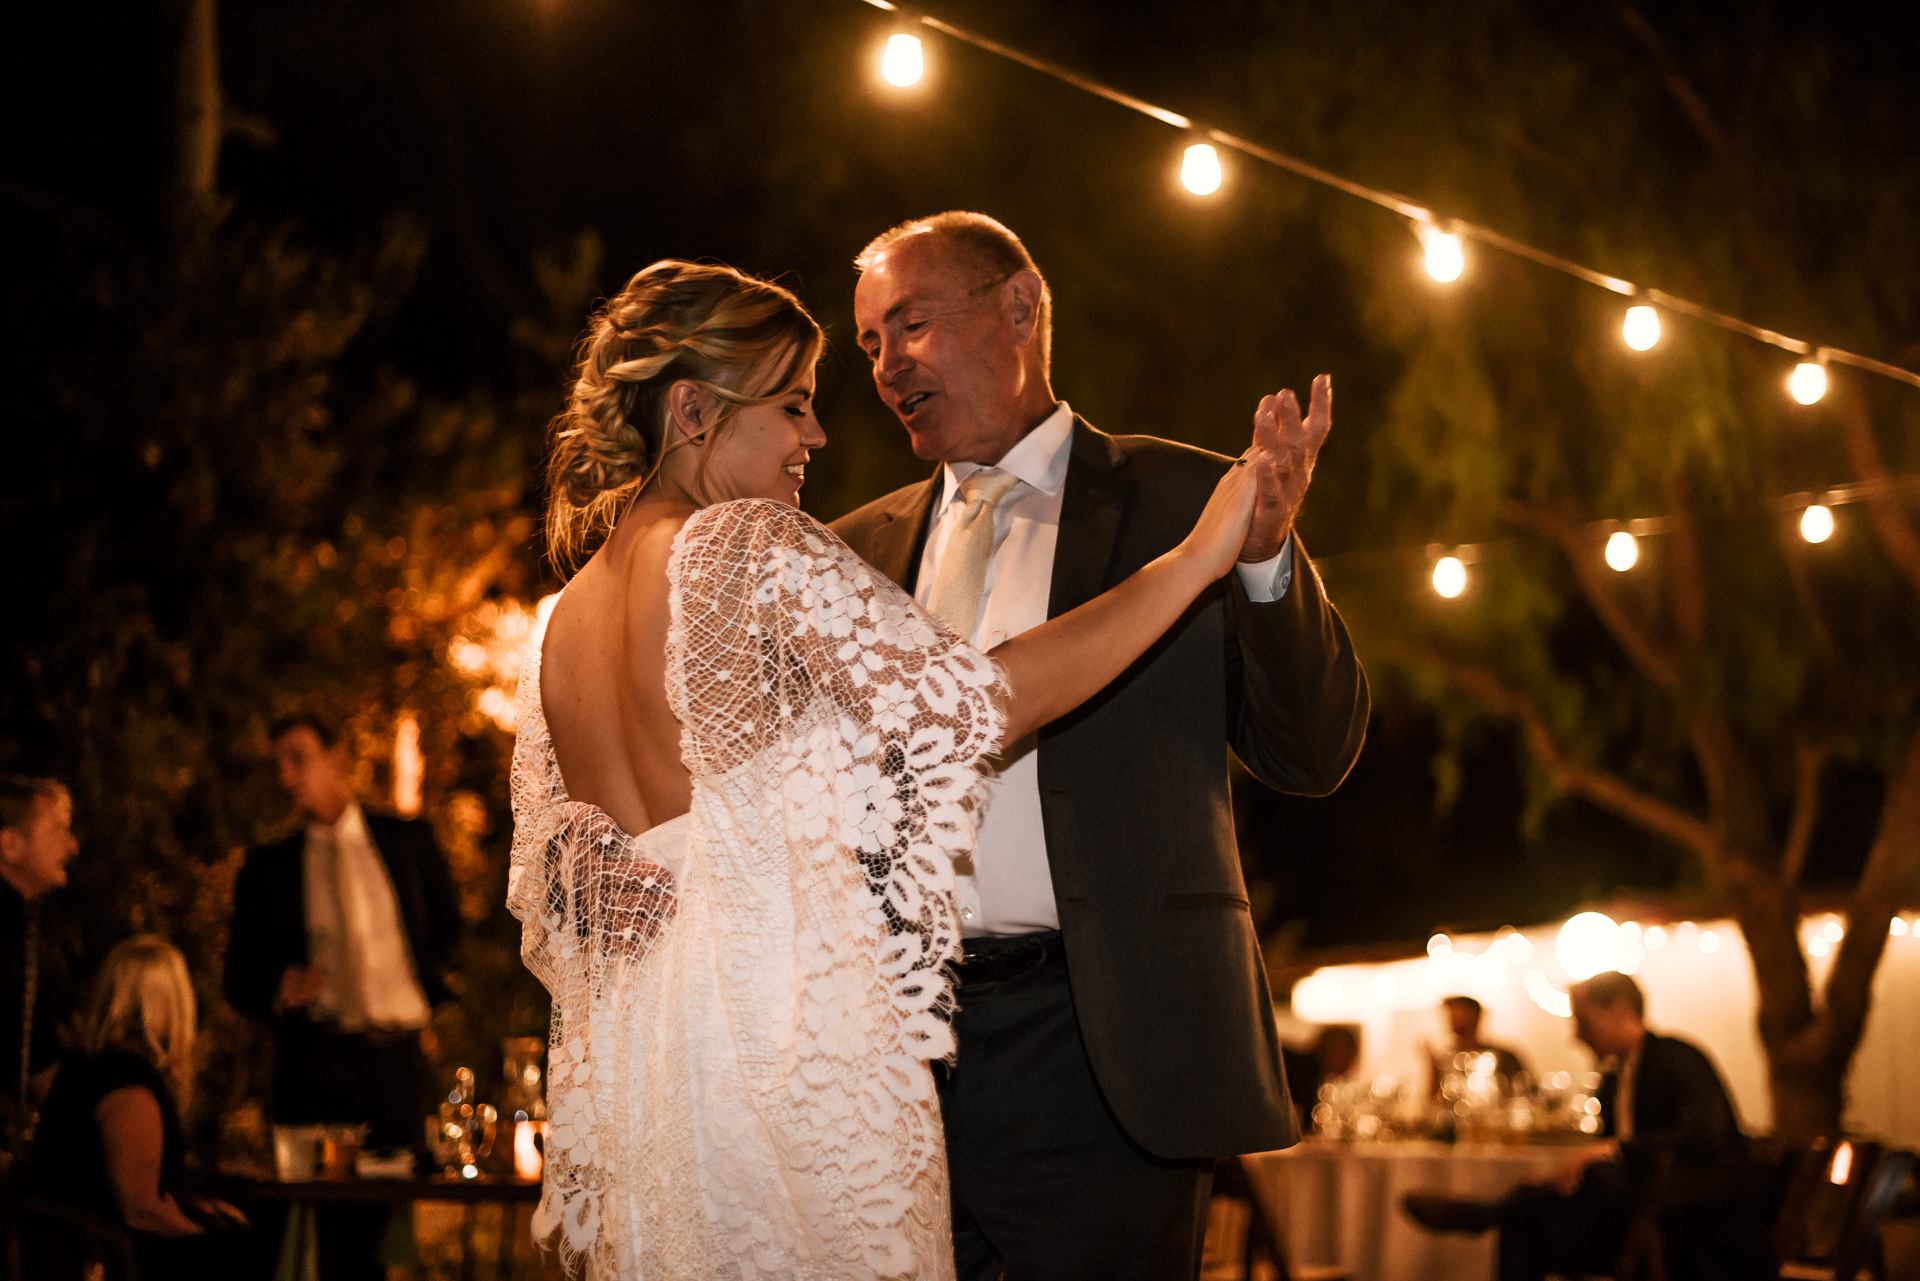 Father dances with bride captured by photographer during romantic wedding at the historic Leo Carrillo Ranch in Carlsbad California